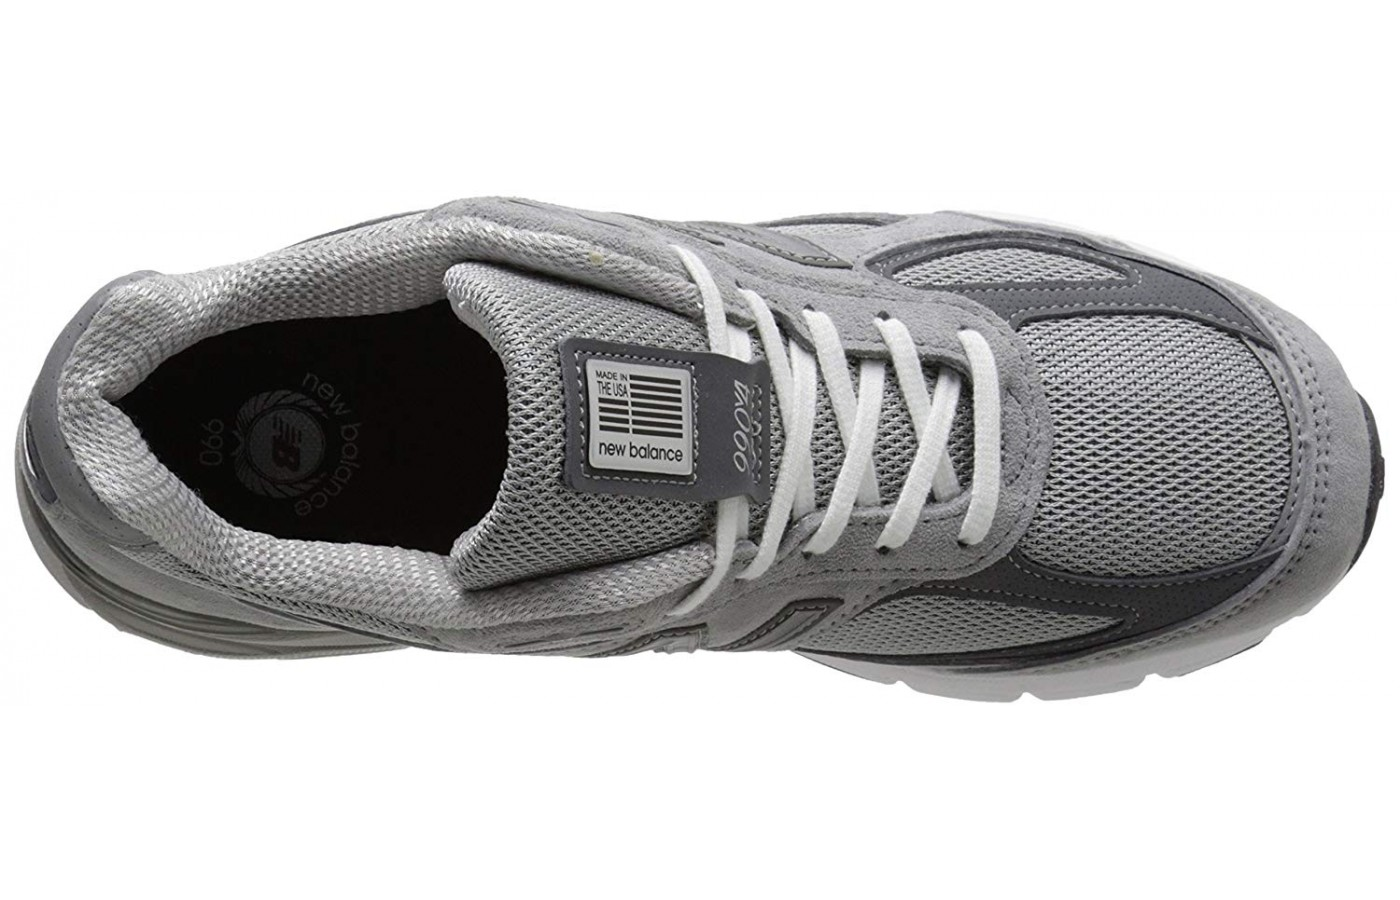 The New Balance 990v4 is good for overpronation